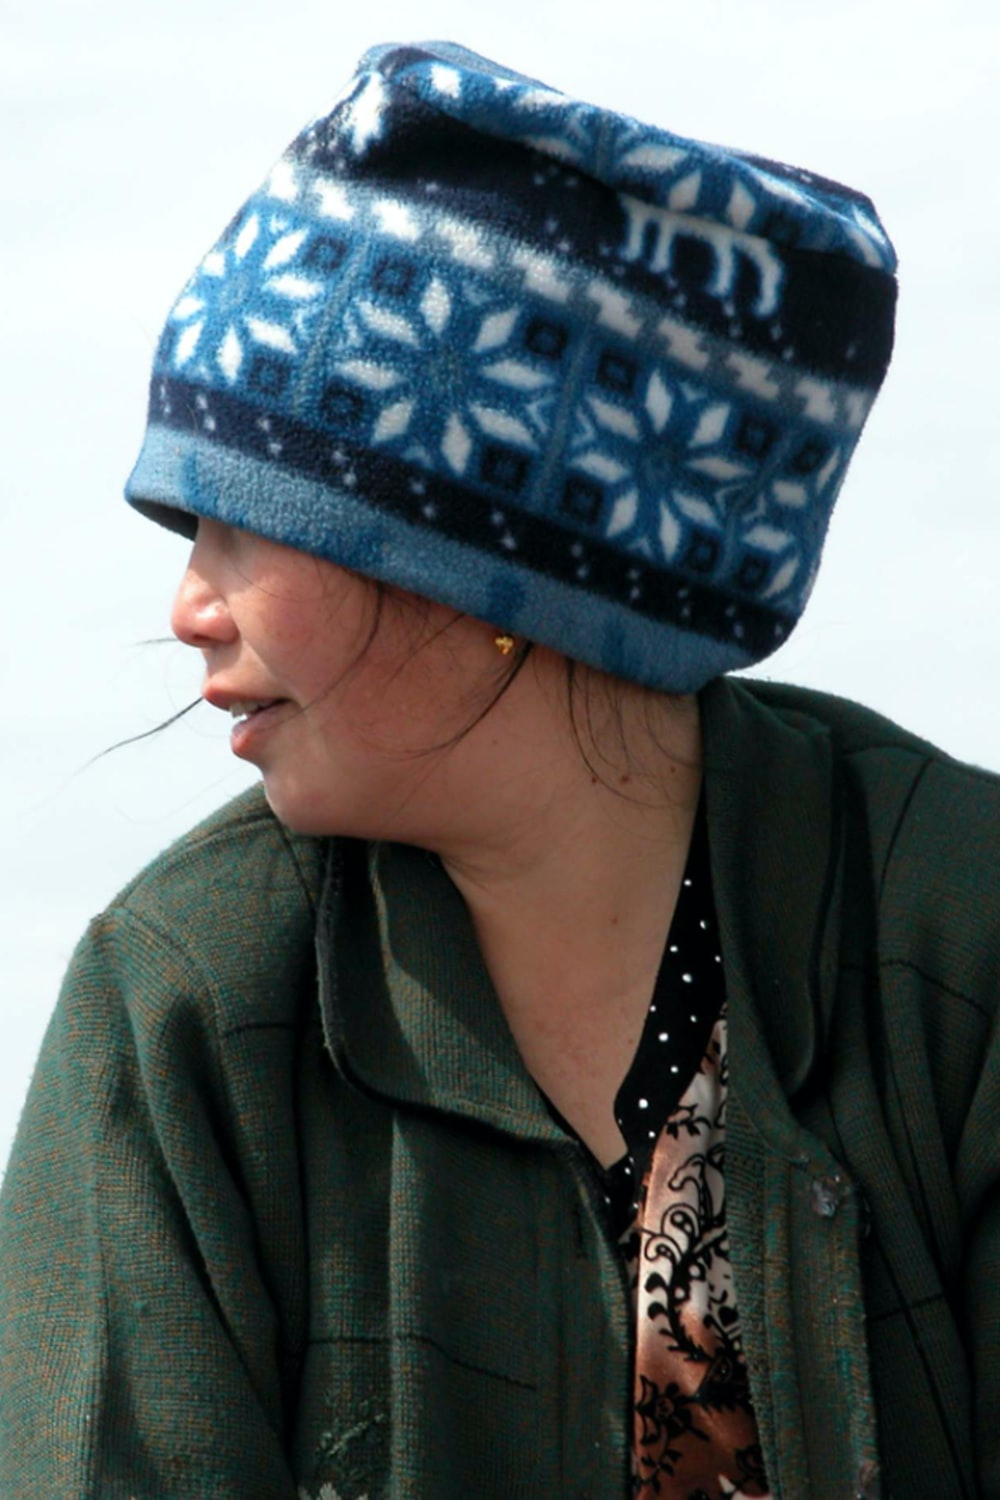 woman in green jacket wearing blue and white knit cap